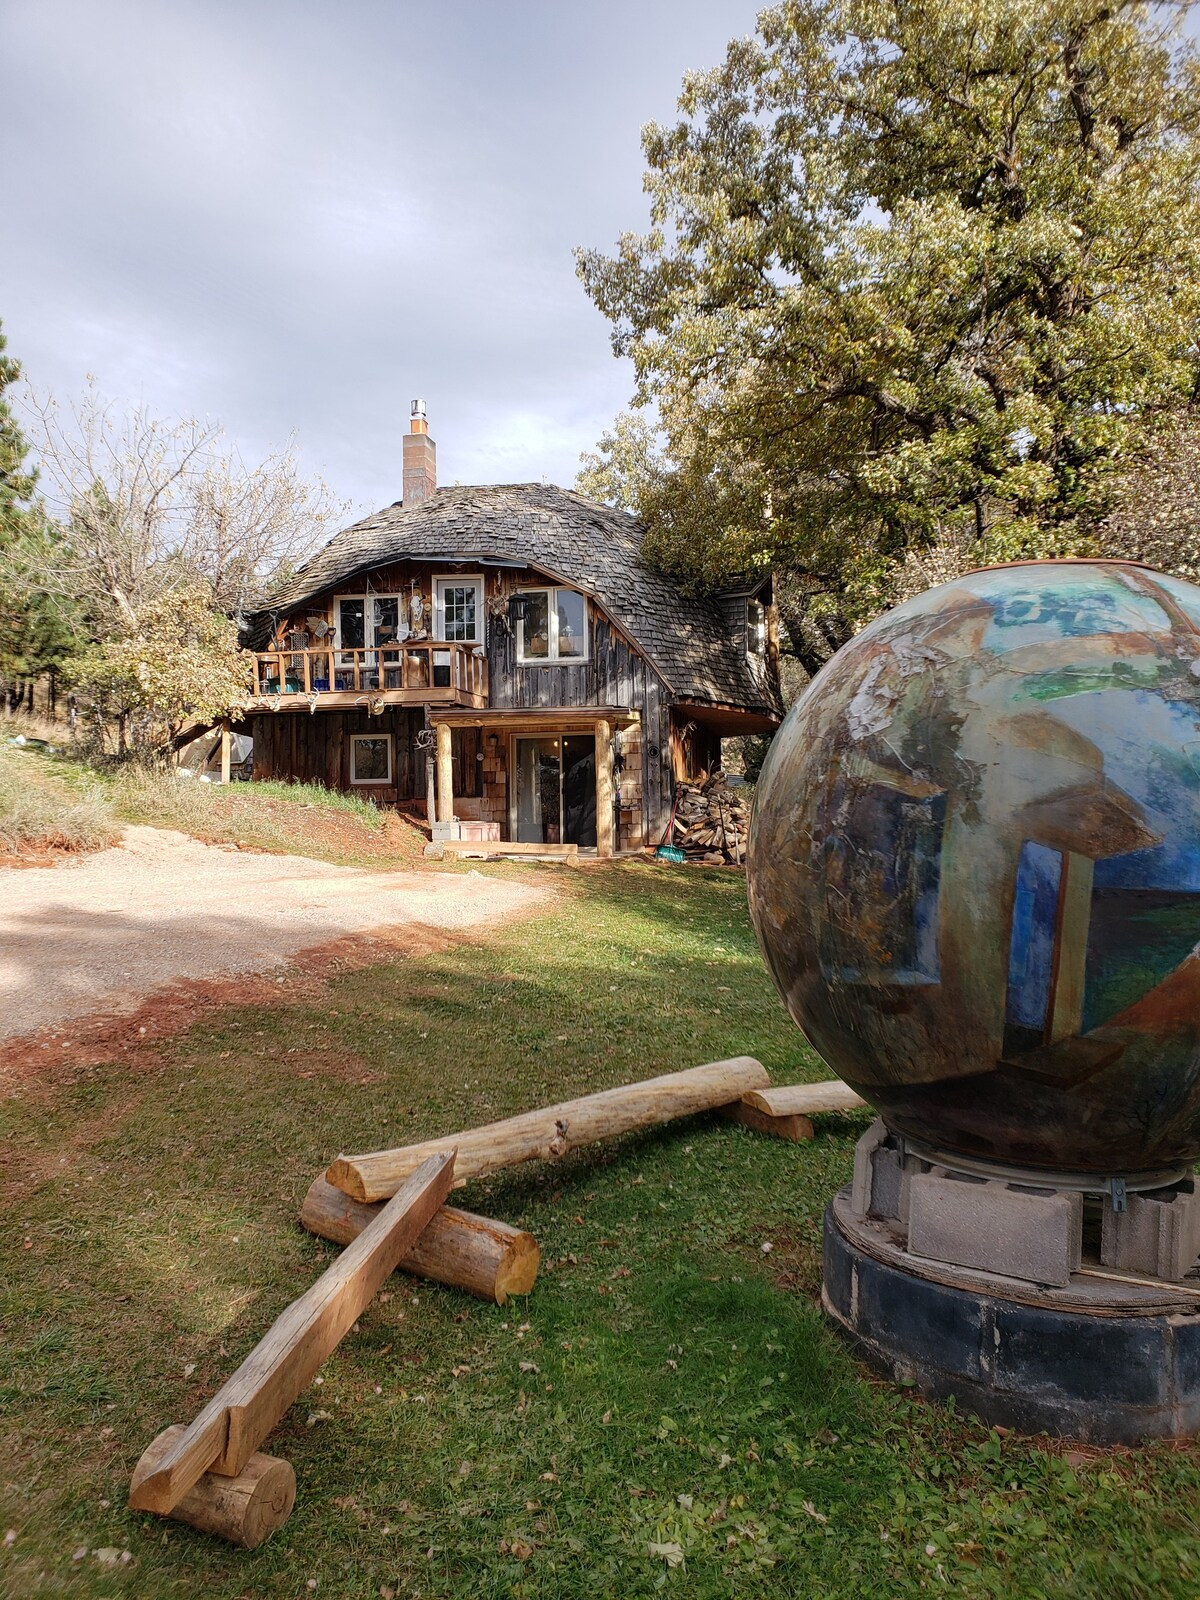 Photo of Turtle House Airbnb in Spearfish South Dakota